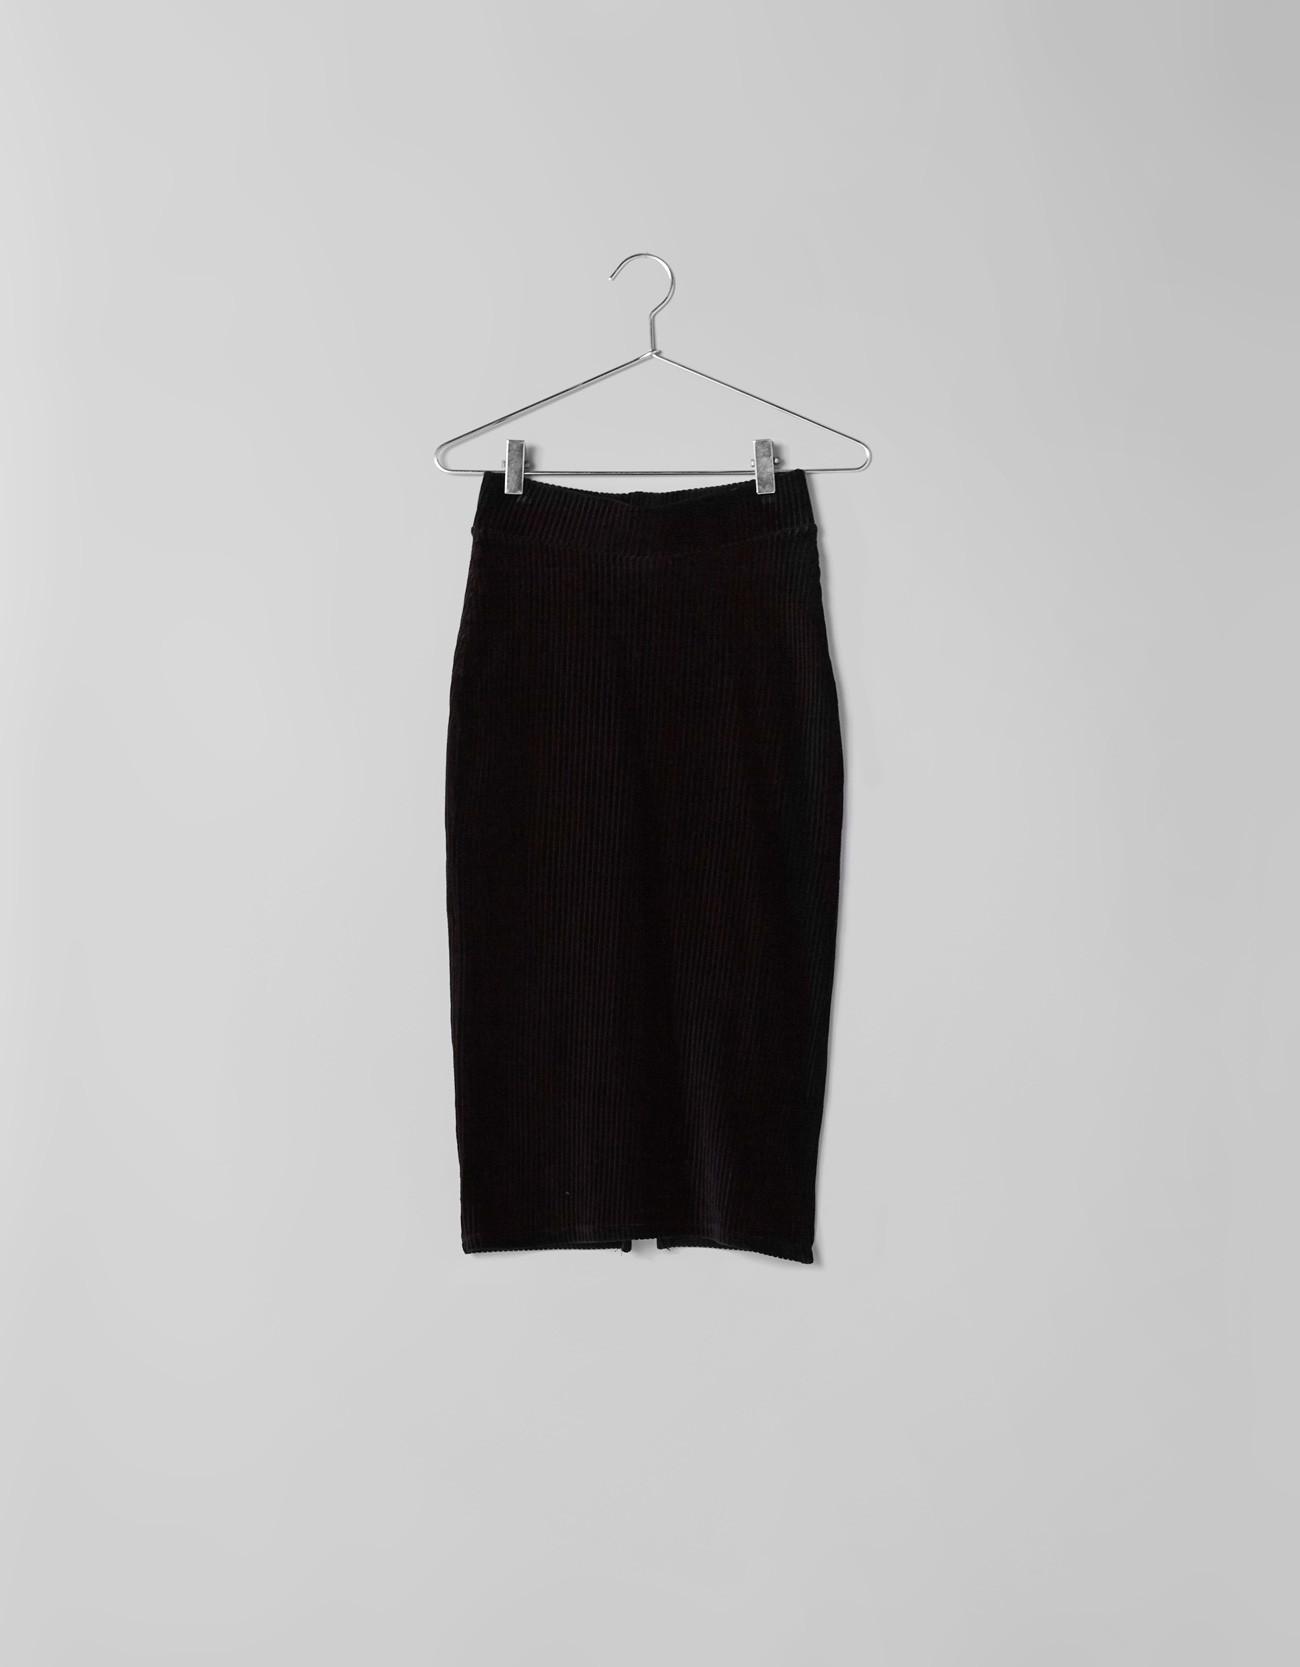 662699cadb Long corduroy skirt - CLOTHING - Bershka Georgia